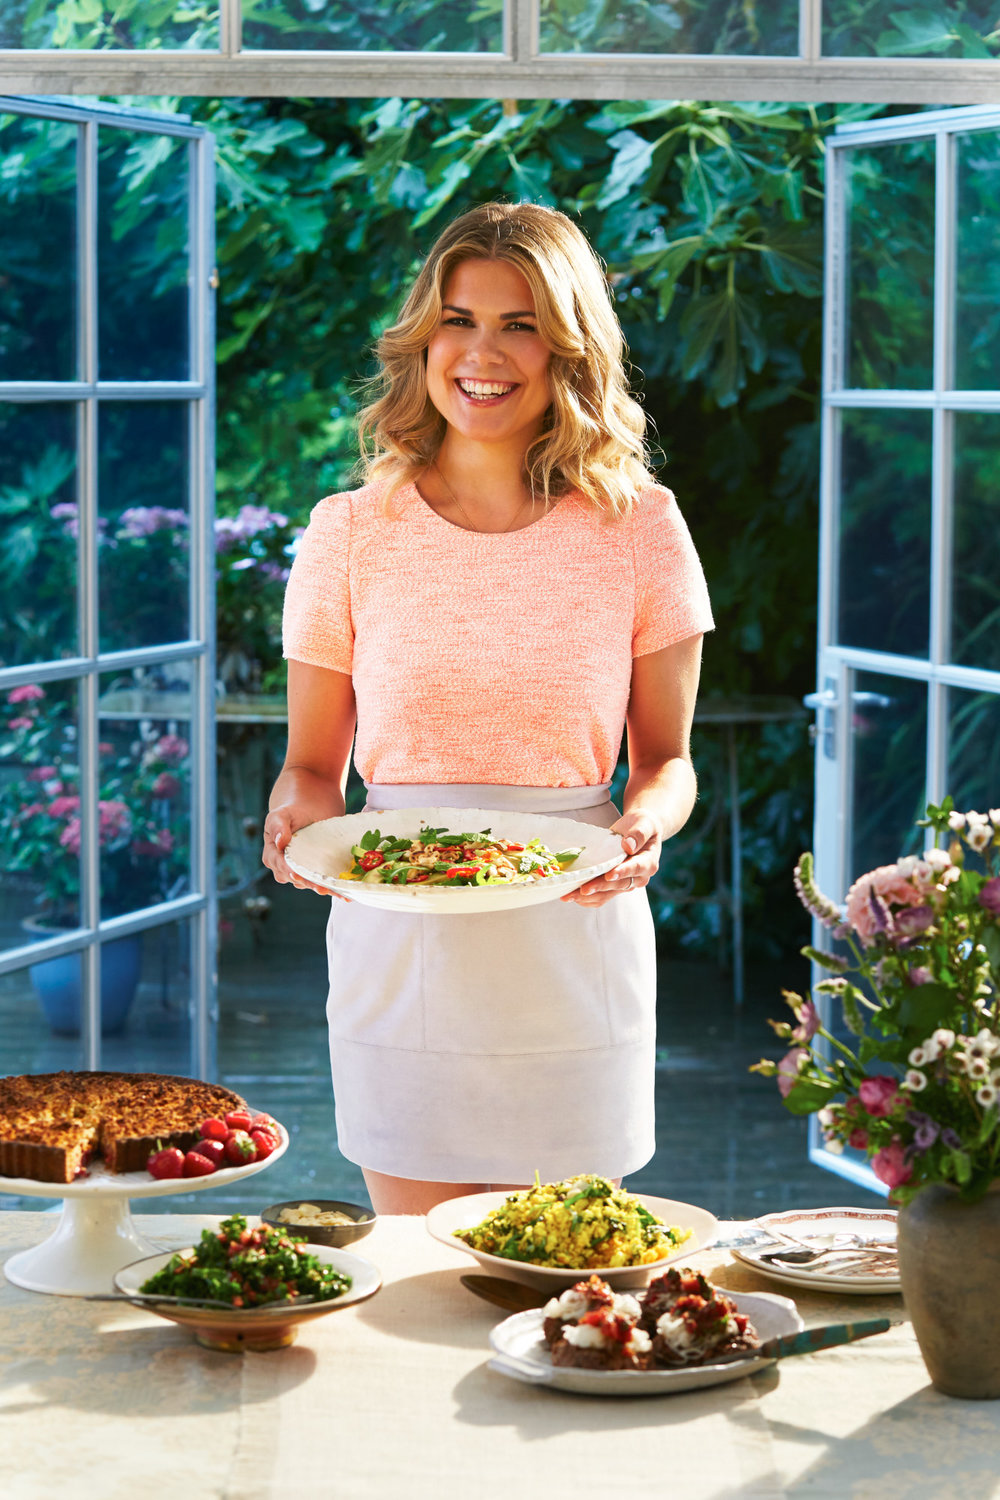 ORION BOOKS Madeleine Shaw 'Ready Steady Glow'